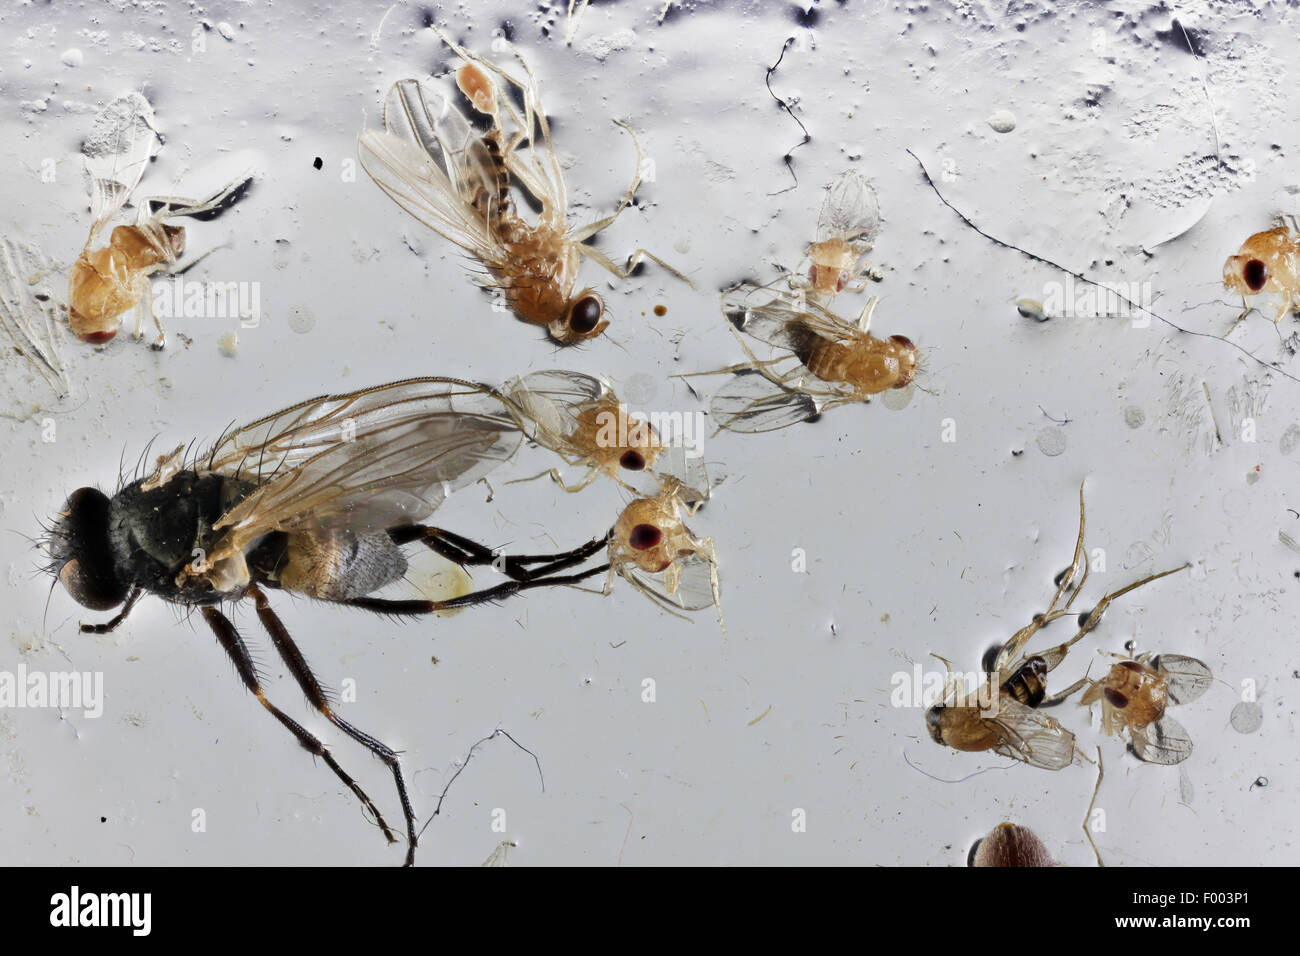 Fly Trap Stock Photos & Fly Trap Stock Images - Alamy